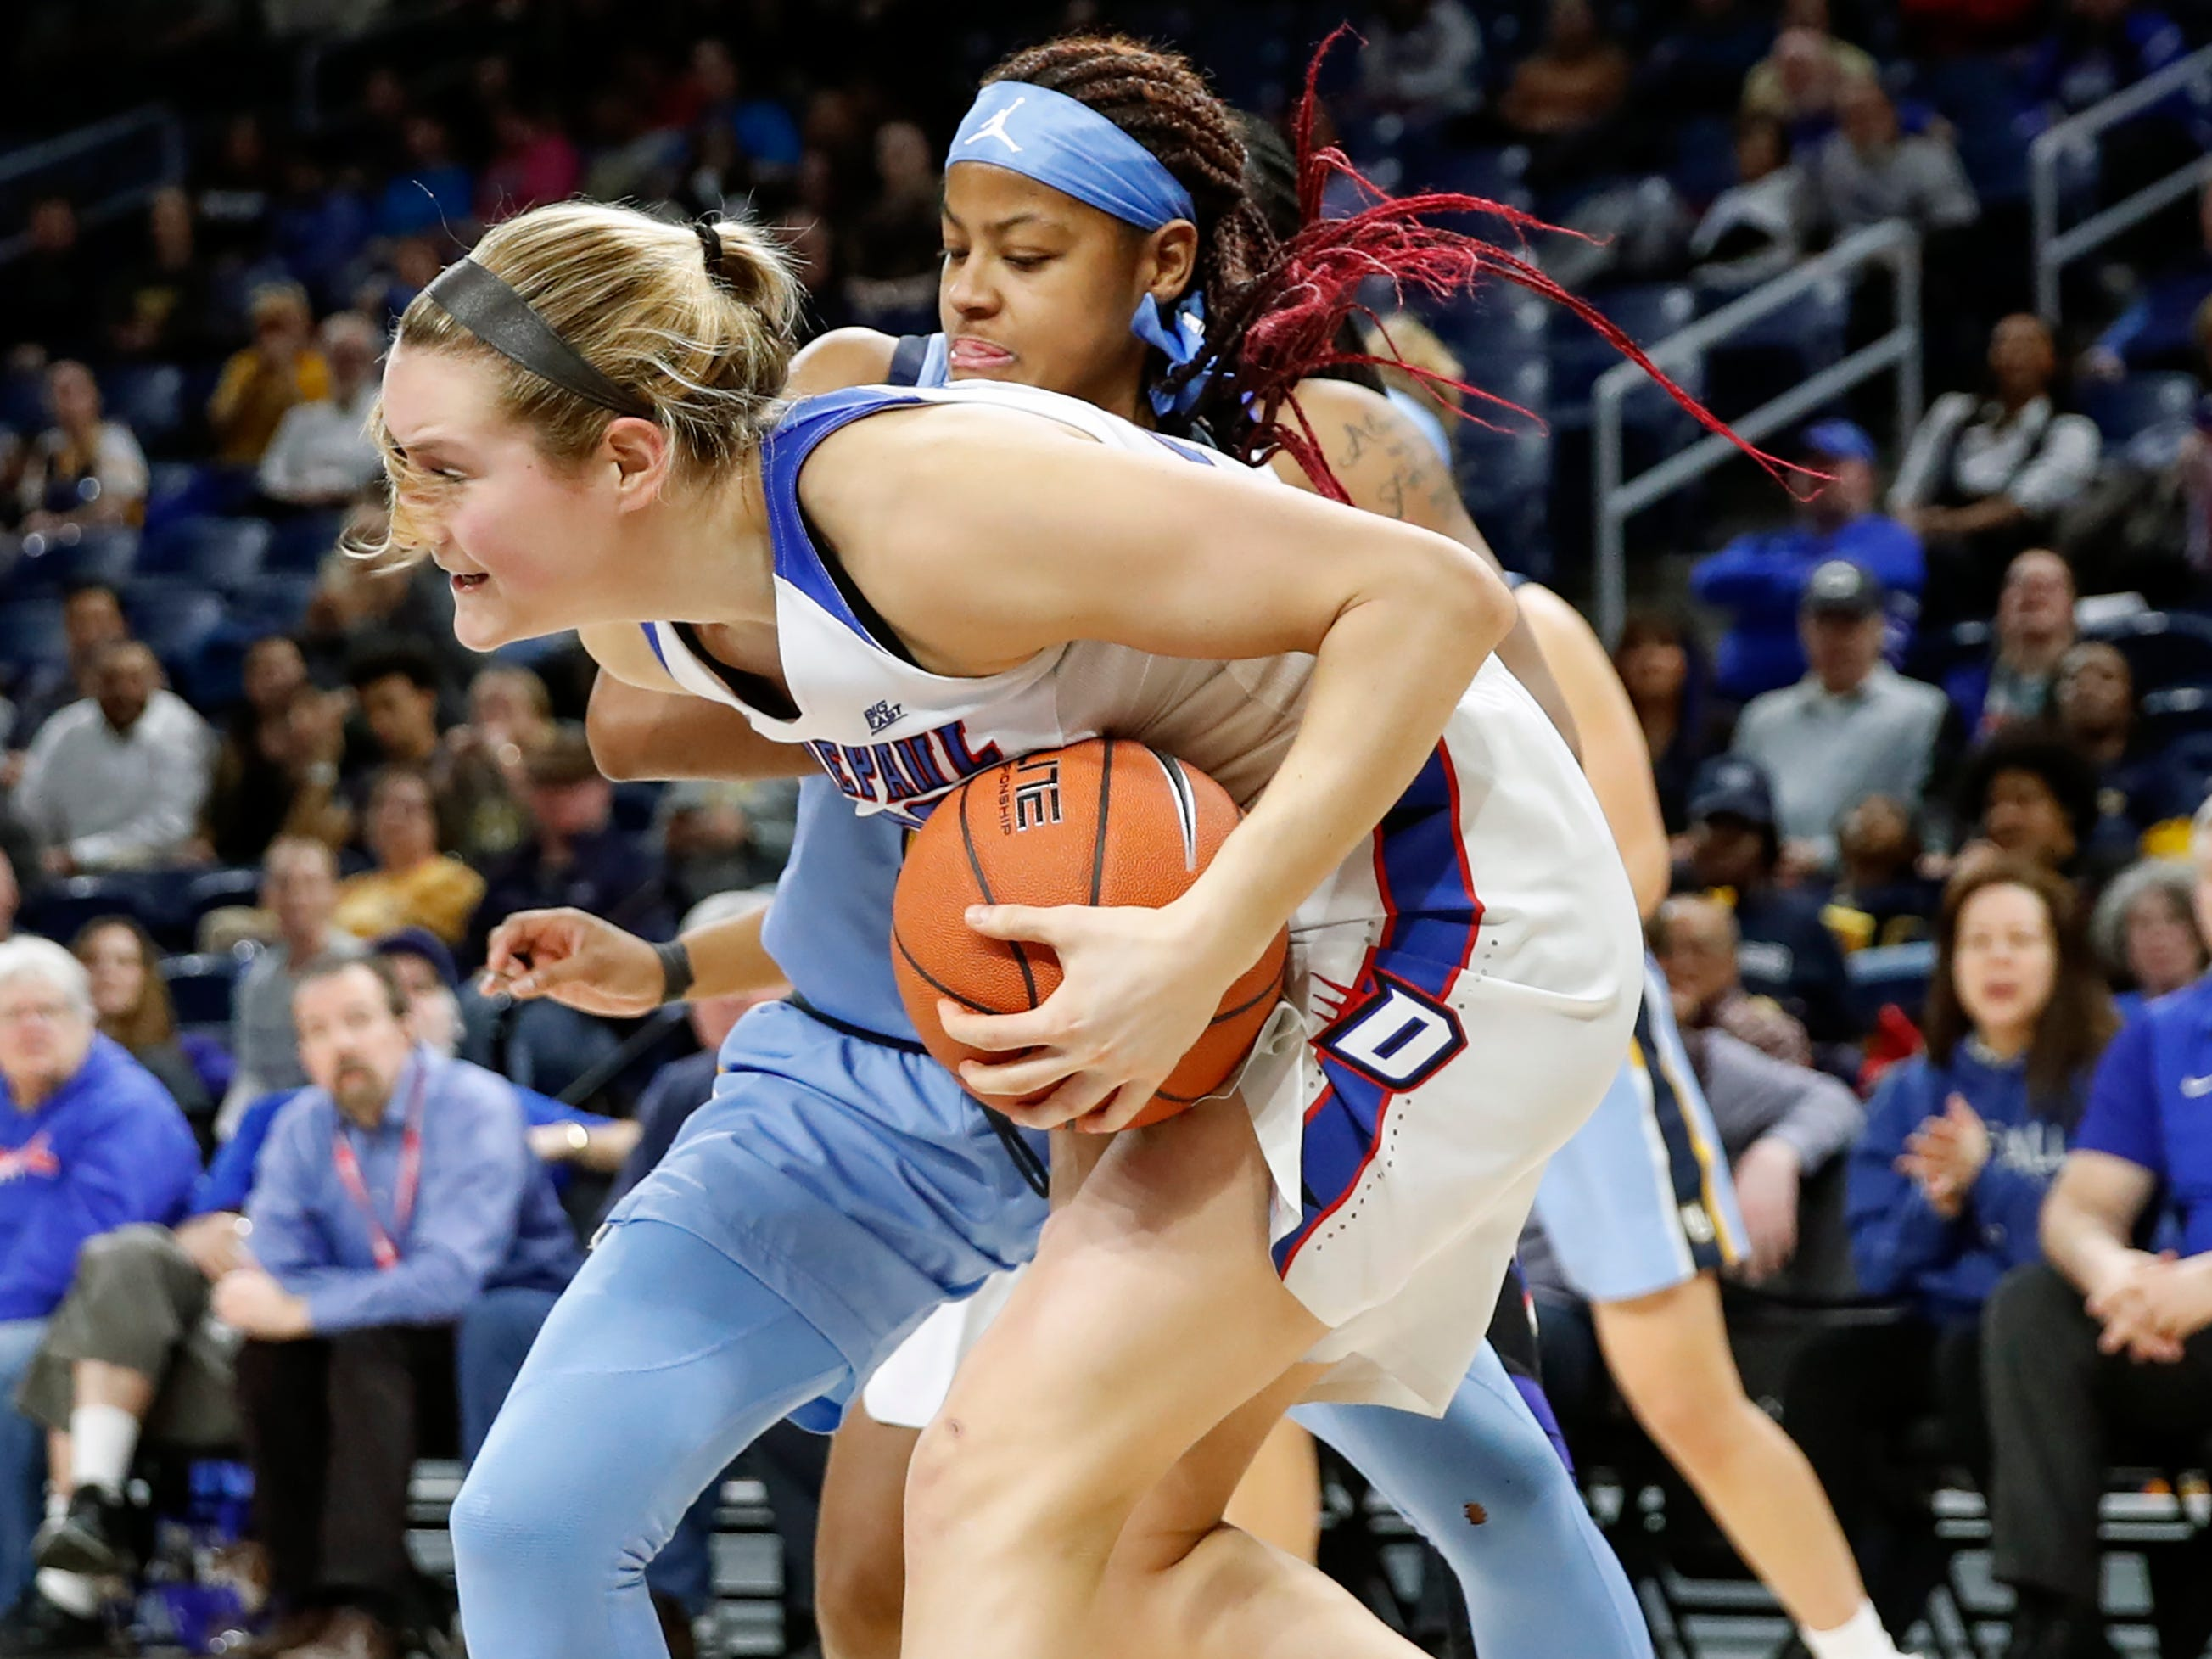 DePaul guard Kelly Campbell steals the ball from Marquette guard Danielle King during the first half.